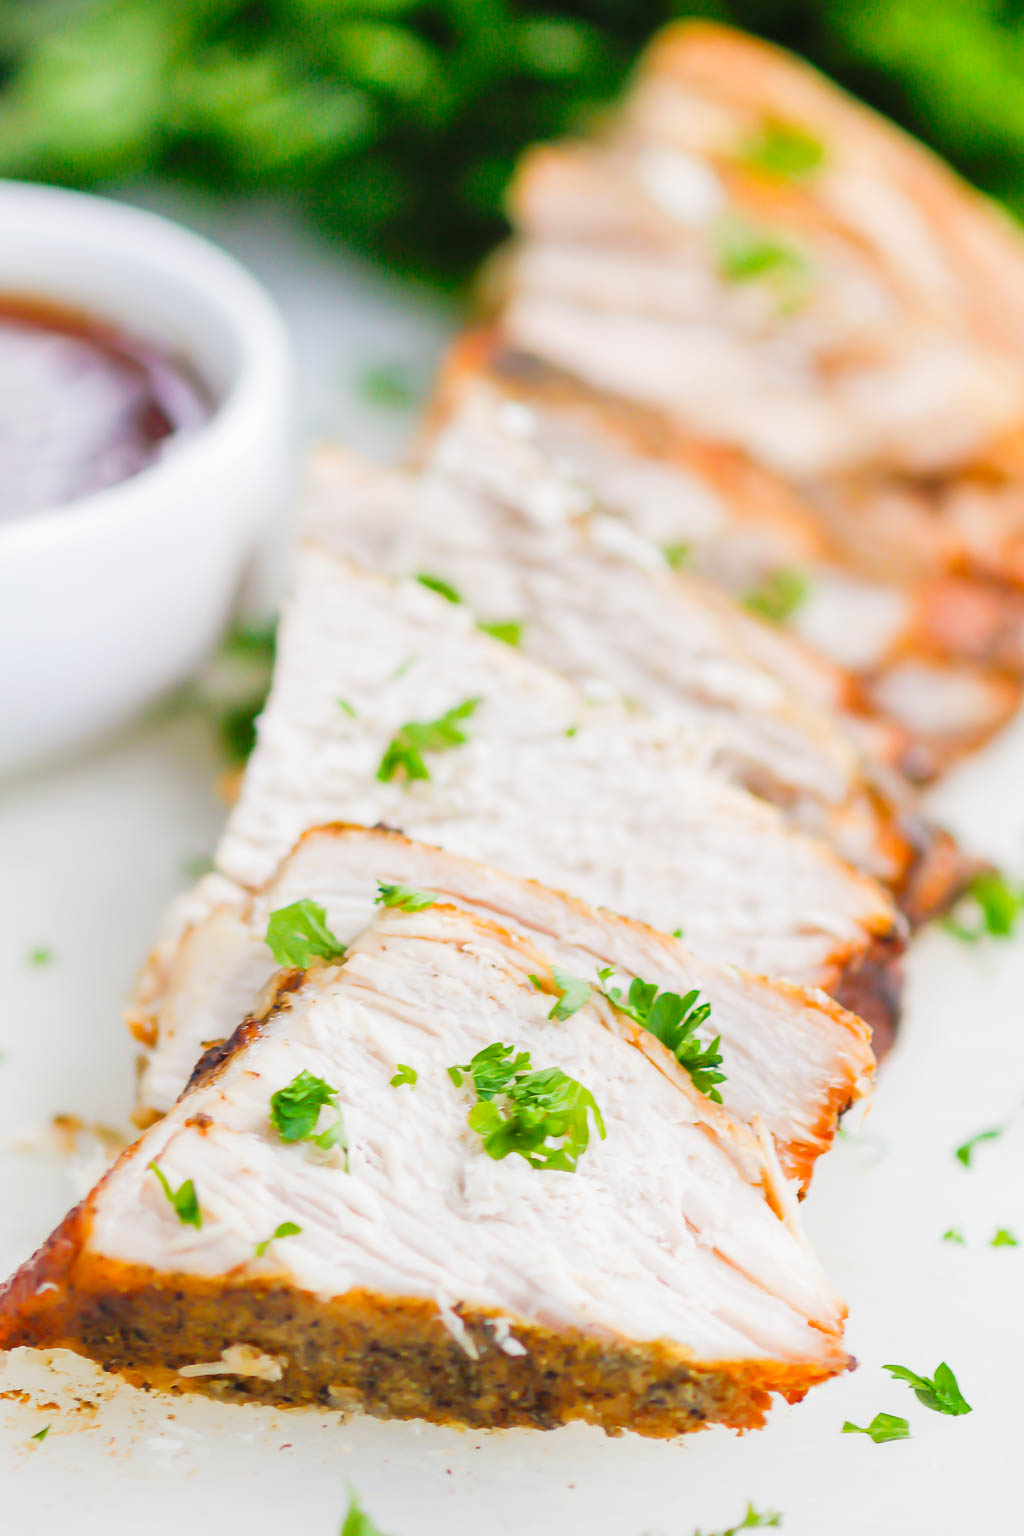 Slow Cooker Honey Balsamic Pork Loin is a simple dish that's loaded with cozy flavors. Made with just a few ingredients, this pork comes out tender, juicy, and drizzled with the most delicious honey balsamic glaze! #pork #porkrecipe #porkloin #porkloinrecipe #porkroast #slowcookerporkroast #slowcookerpork #honeybalsamic #honeybalsamicpork #balsamicpork #fallrecipes #falldinners #easydinners